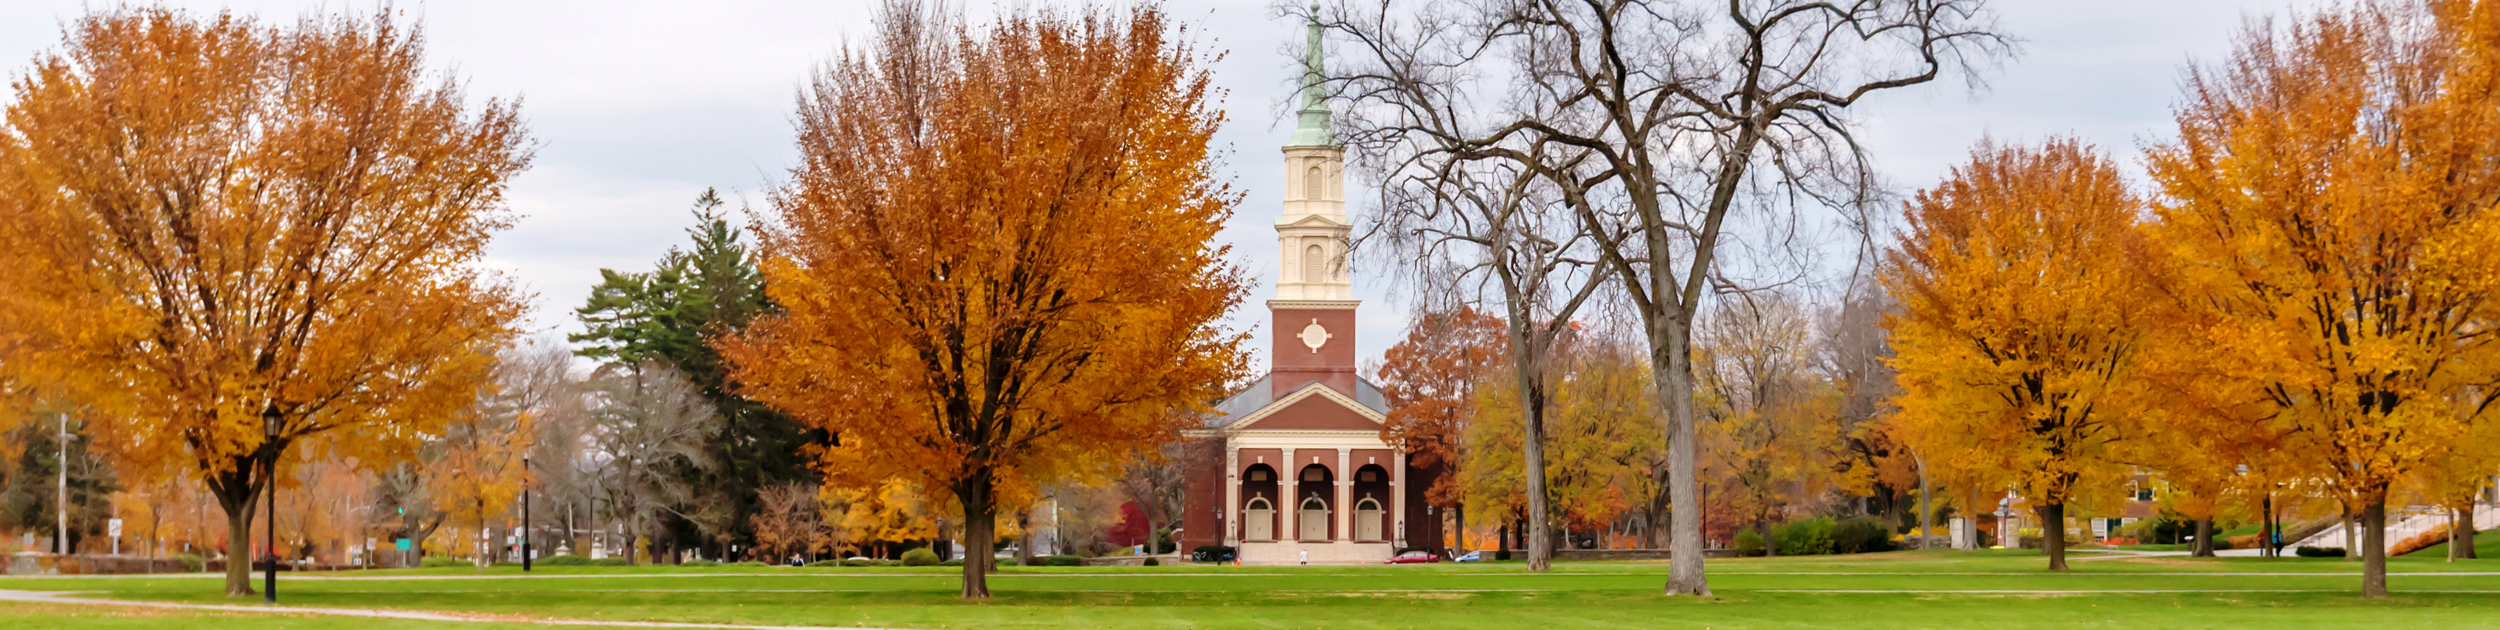 view of Phillips Academy in andover ma in the Fall